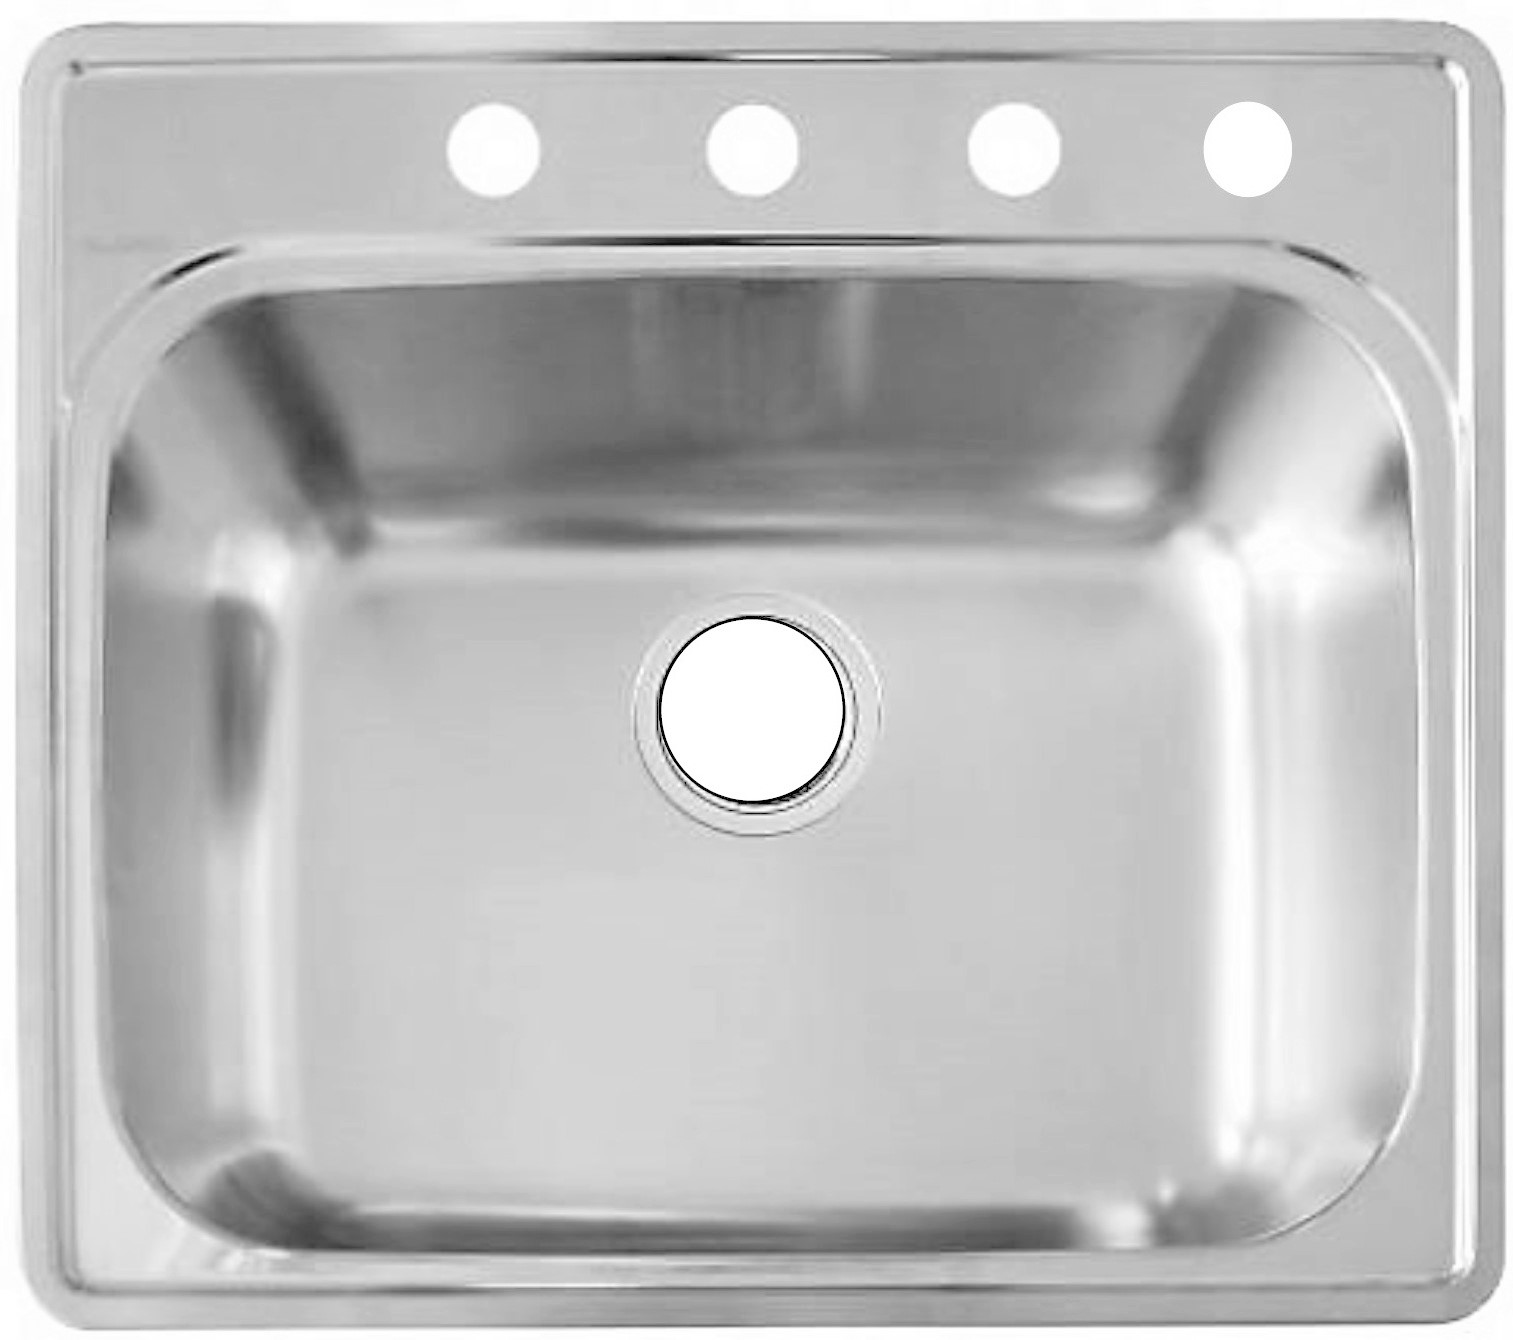 As110 25 X 22 X 8 20g Single Bowl Topmount Builder Stainless Steel Kitchen Sink Amerisink